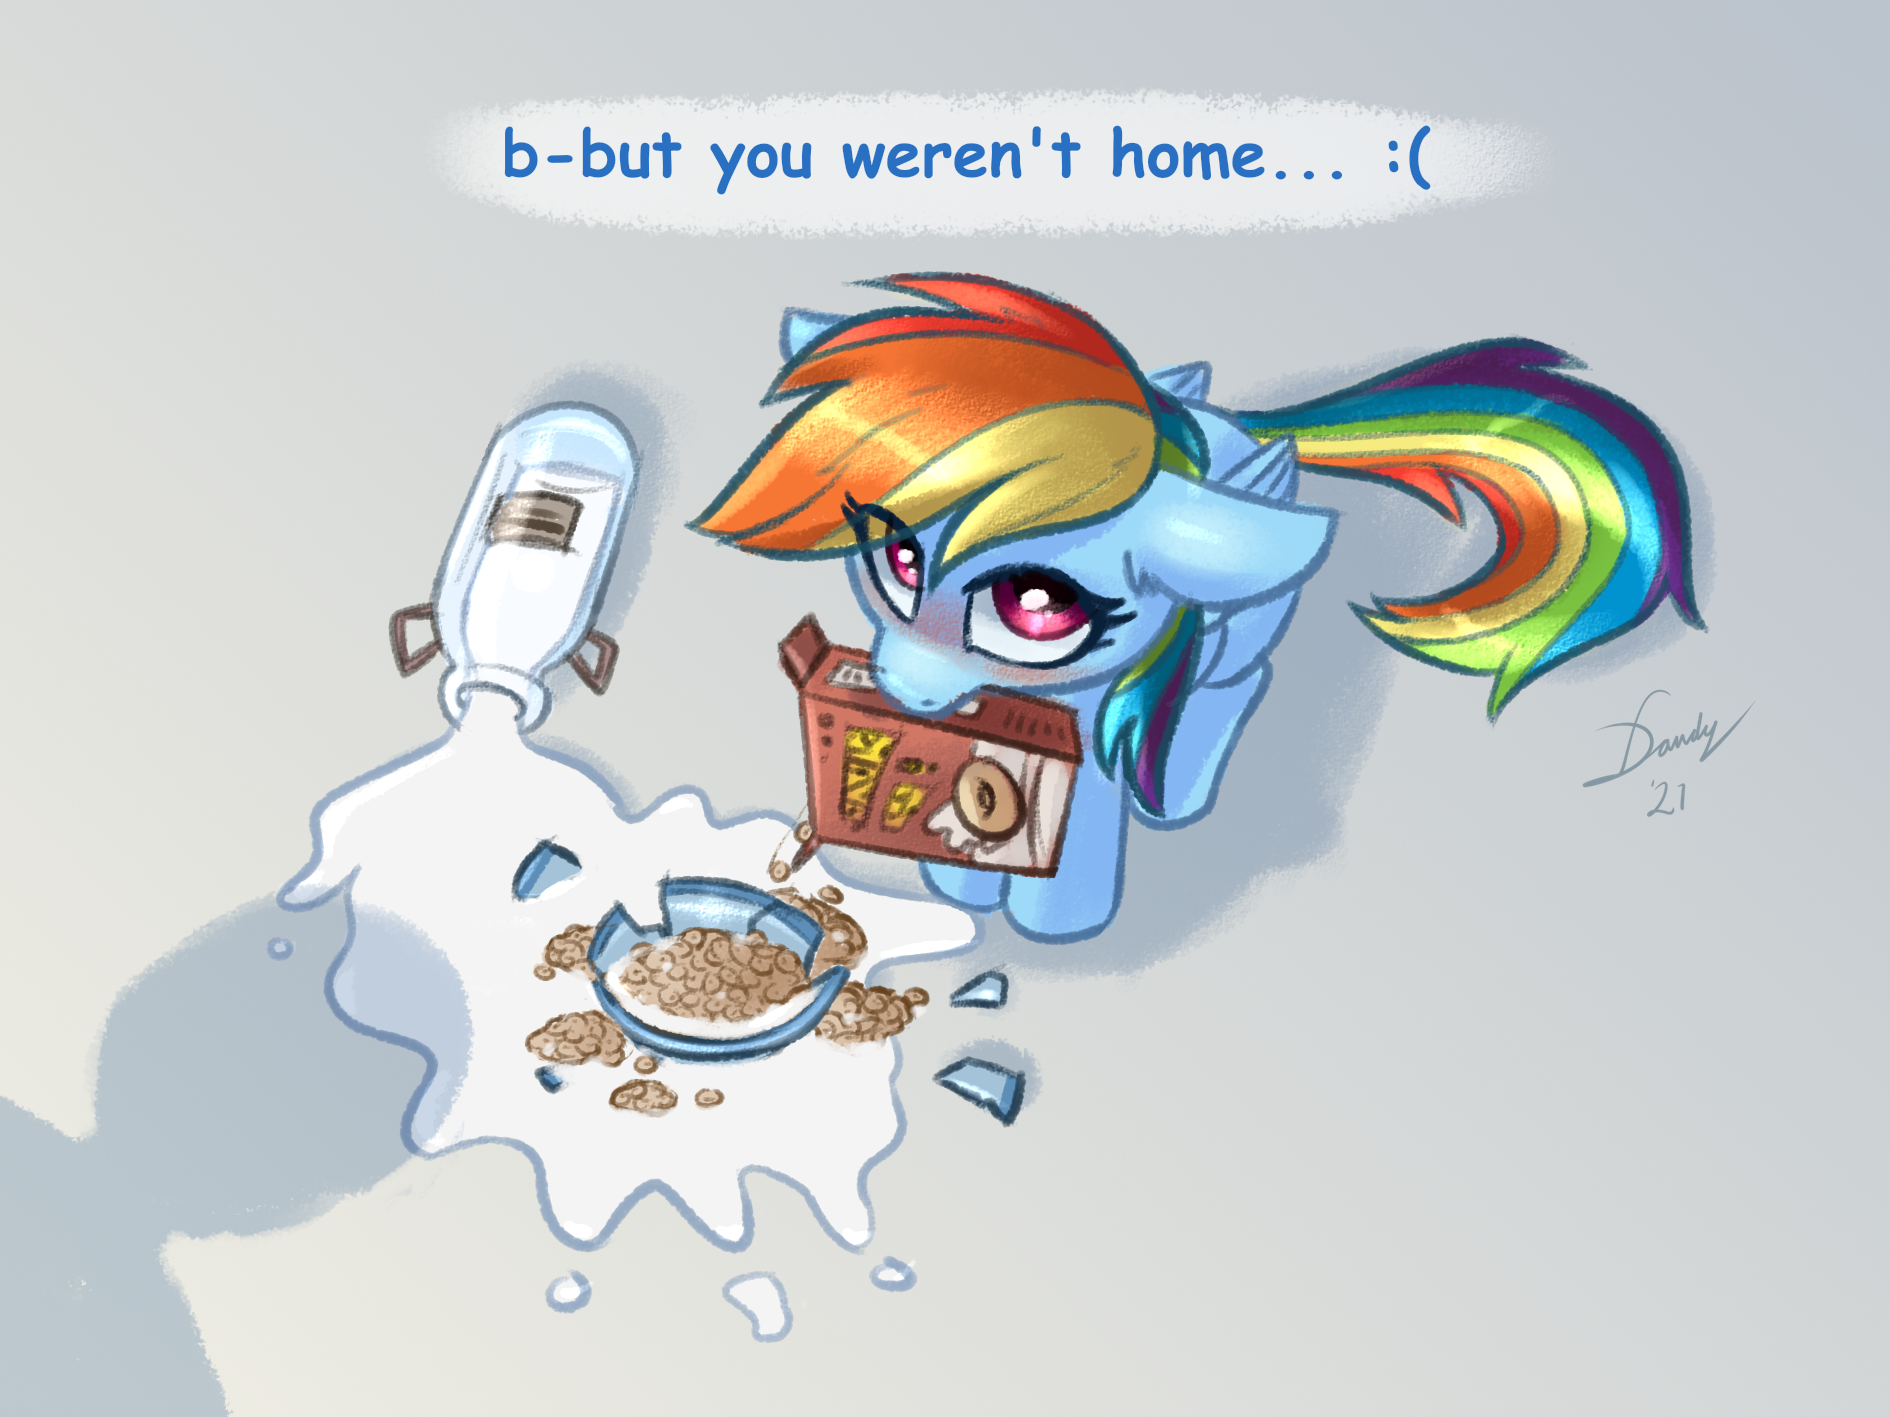 2630782__safe_artist-colon-dandy_rainbow+dash_pegasus_pony_bad+pony_blushing_cereal_cute_dashabetes_embarrassed_exploitable+meme_female_food_from+above_mare_mem.png